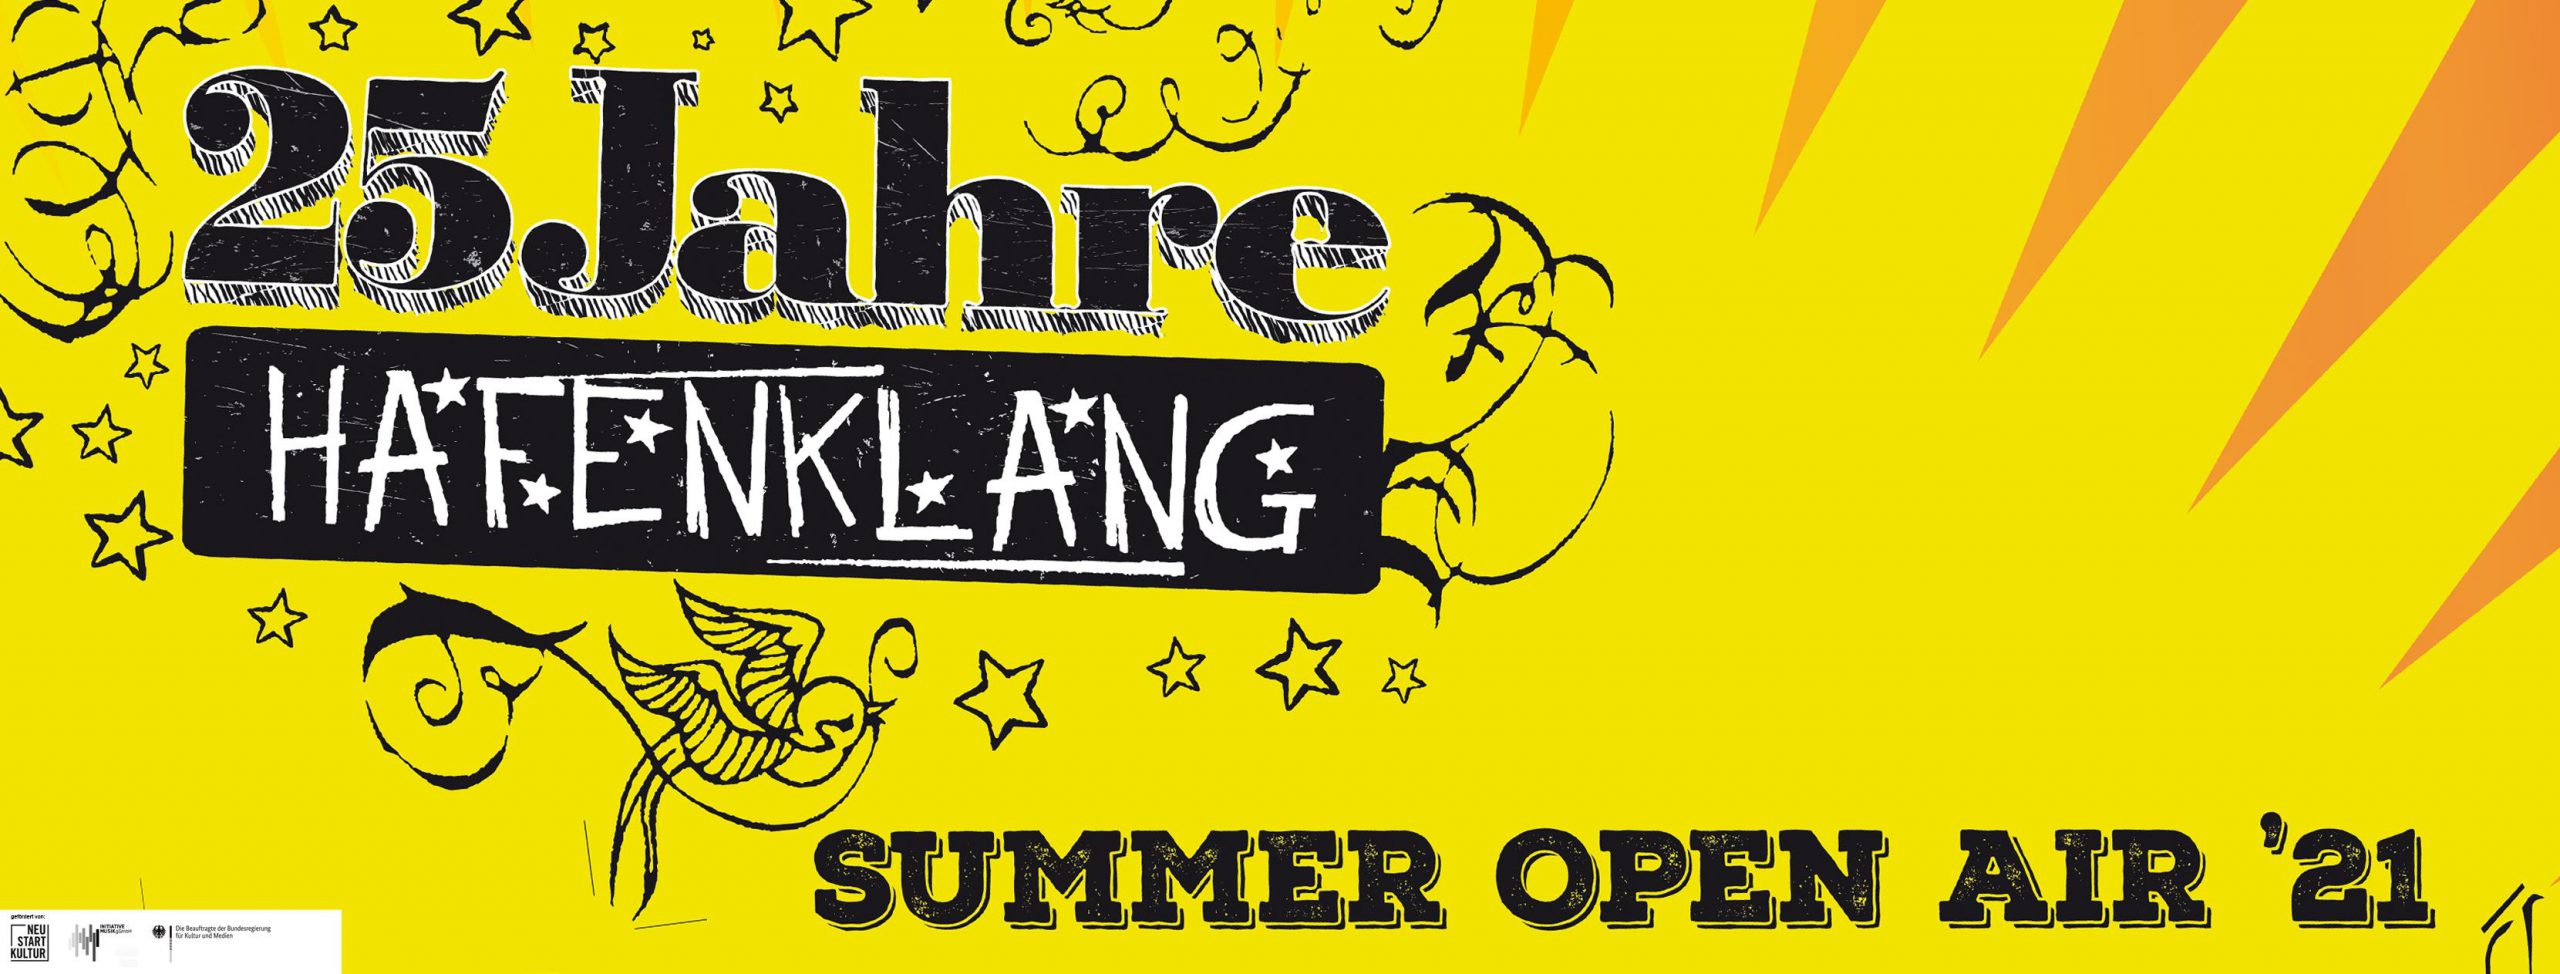 Teaser-25-Jahre-Hafenklang-Sommer-Open-Airs